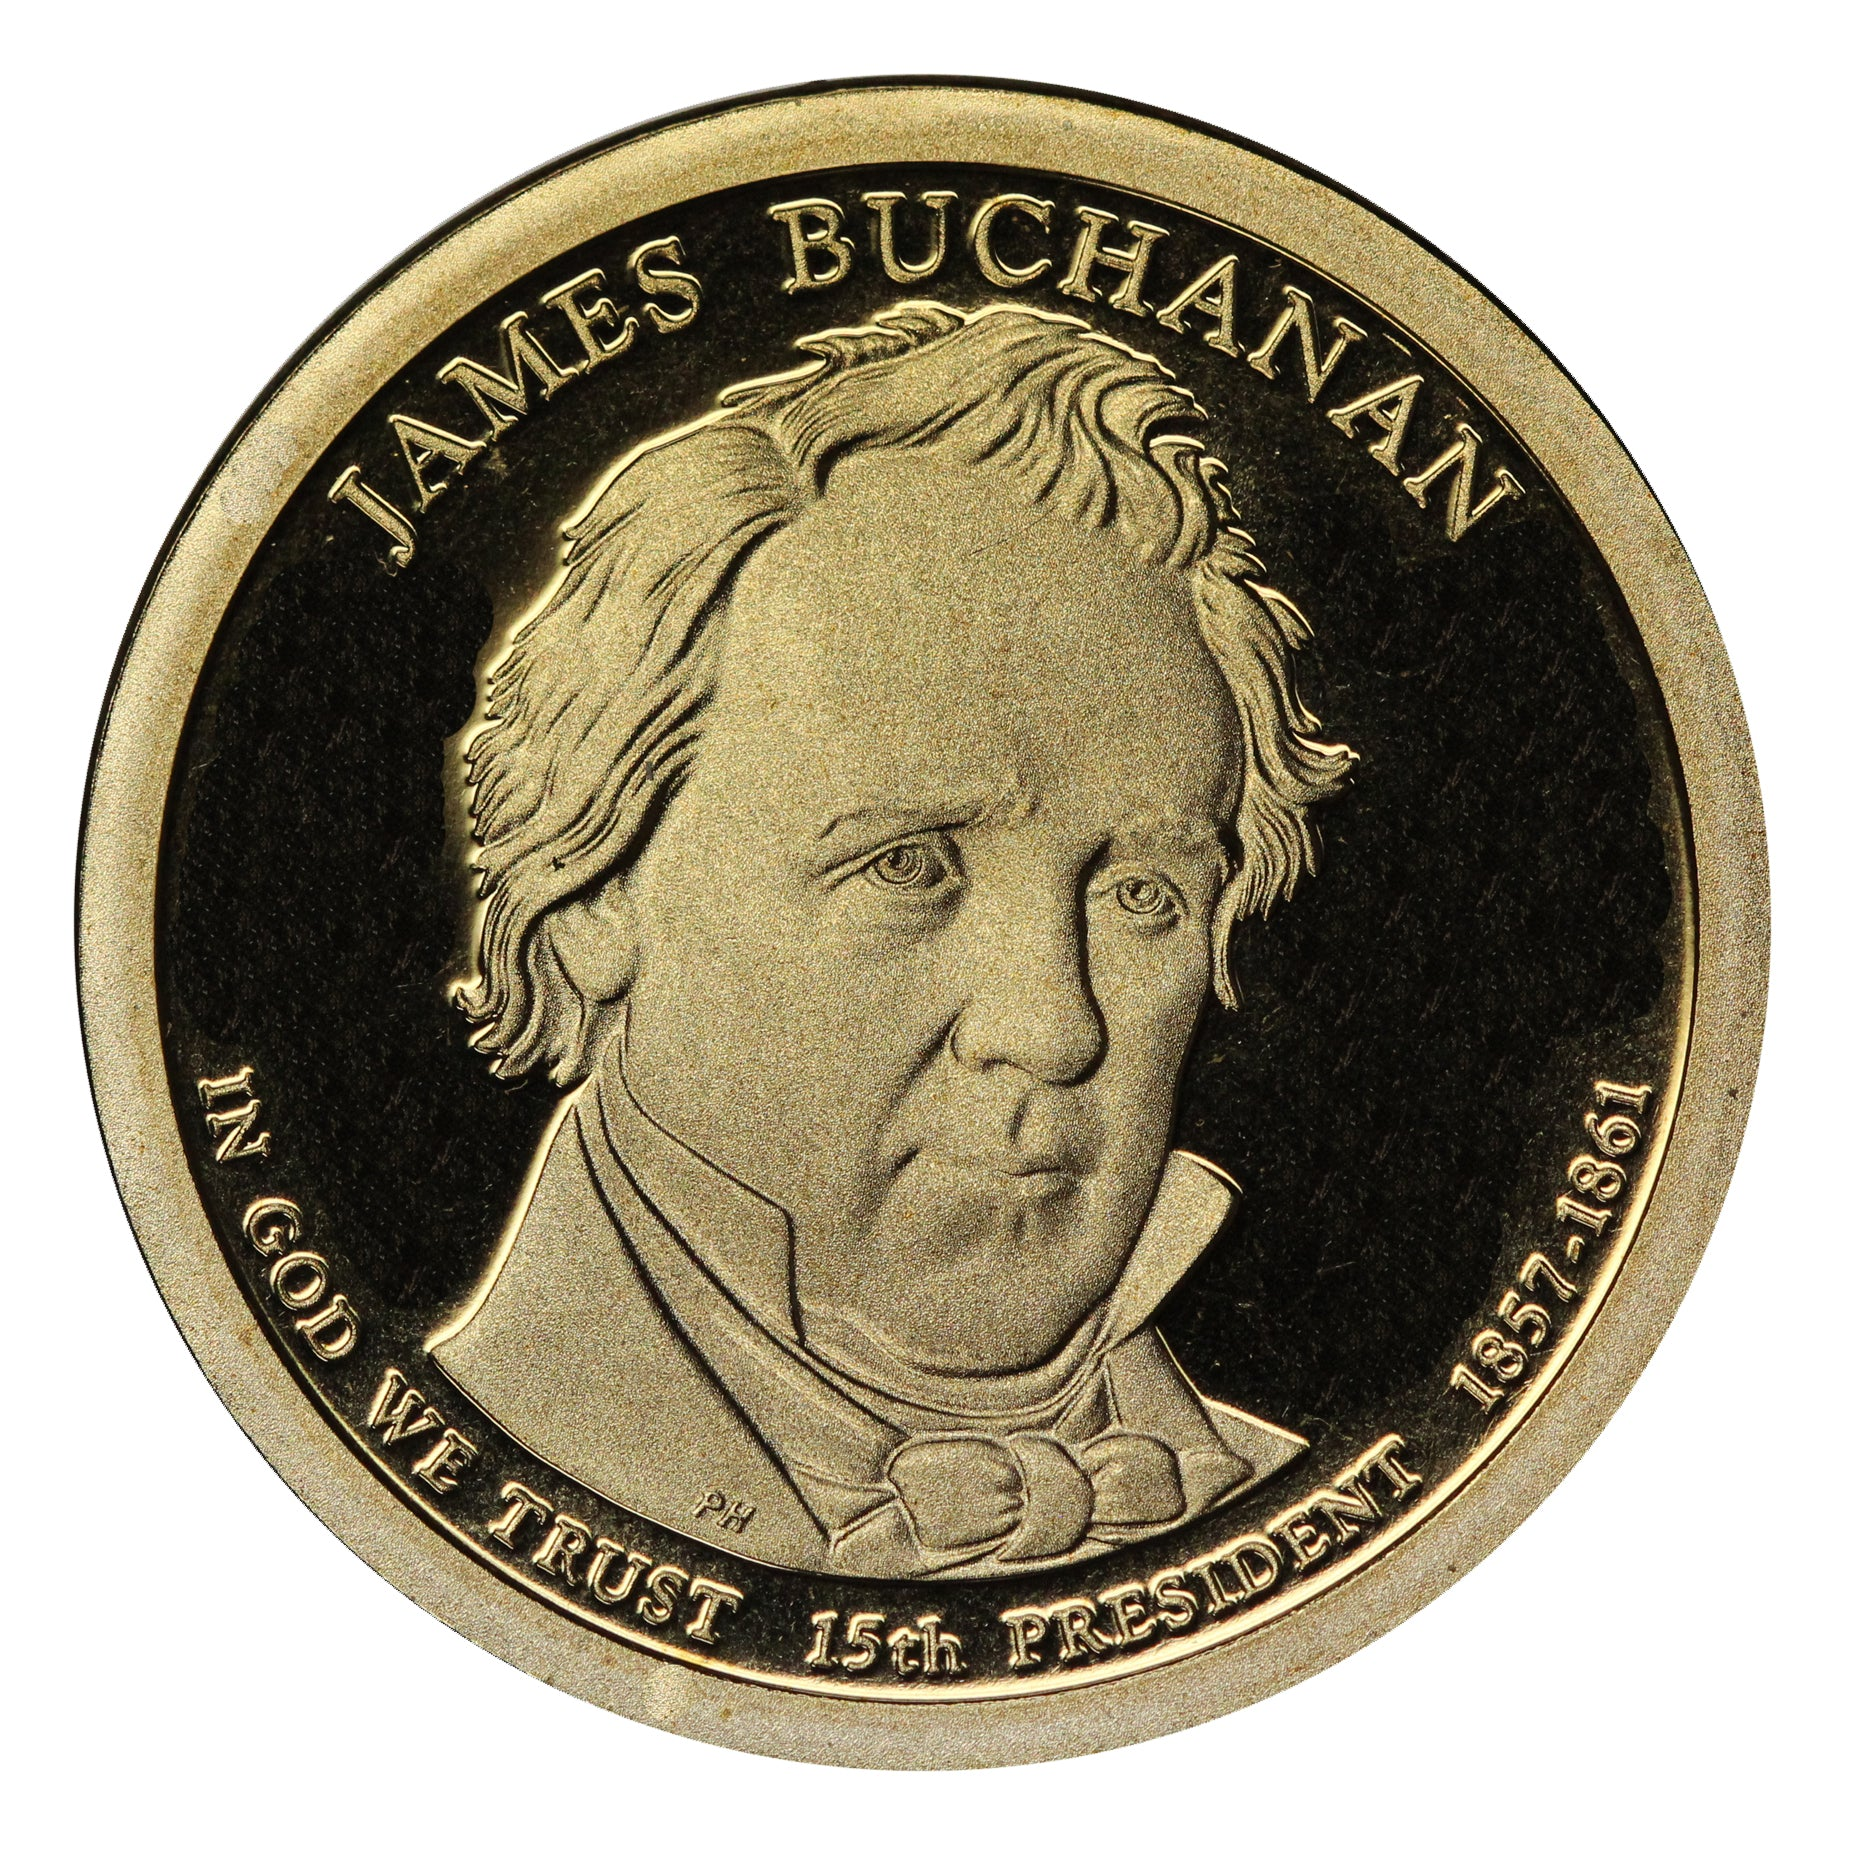 2010-S James Buchanan Presidential Proof Dollar Gem Deep Cameo US Coin